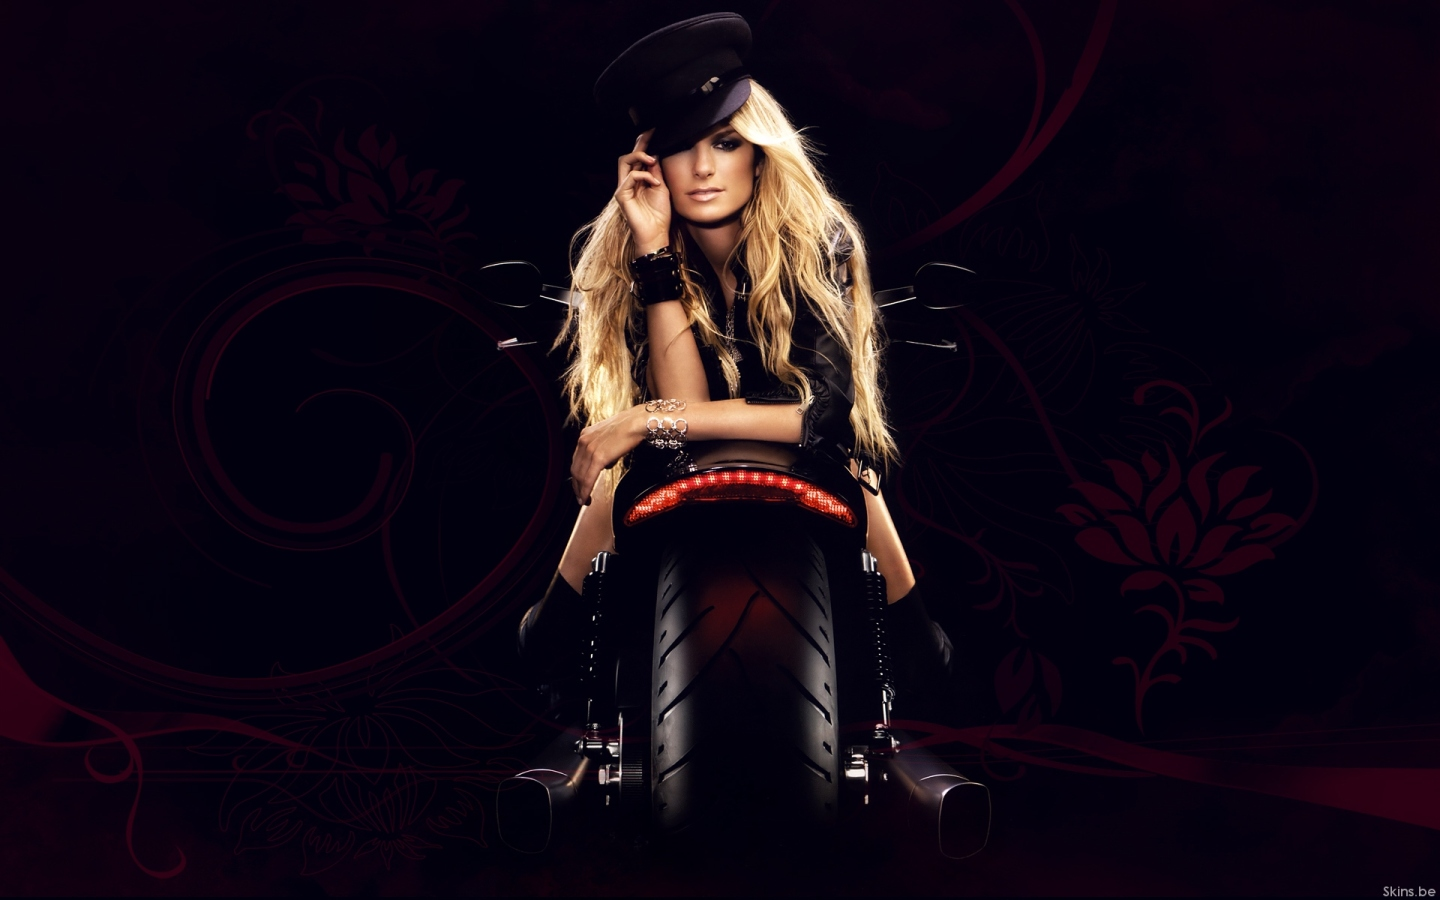 Marisa Miller wallpaper (#34545)